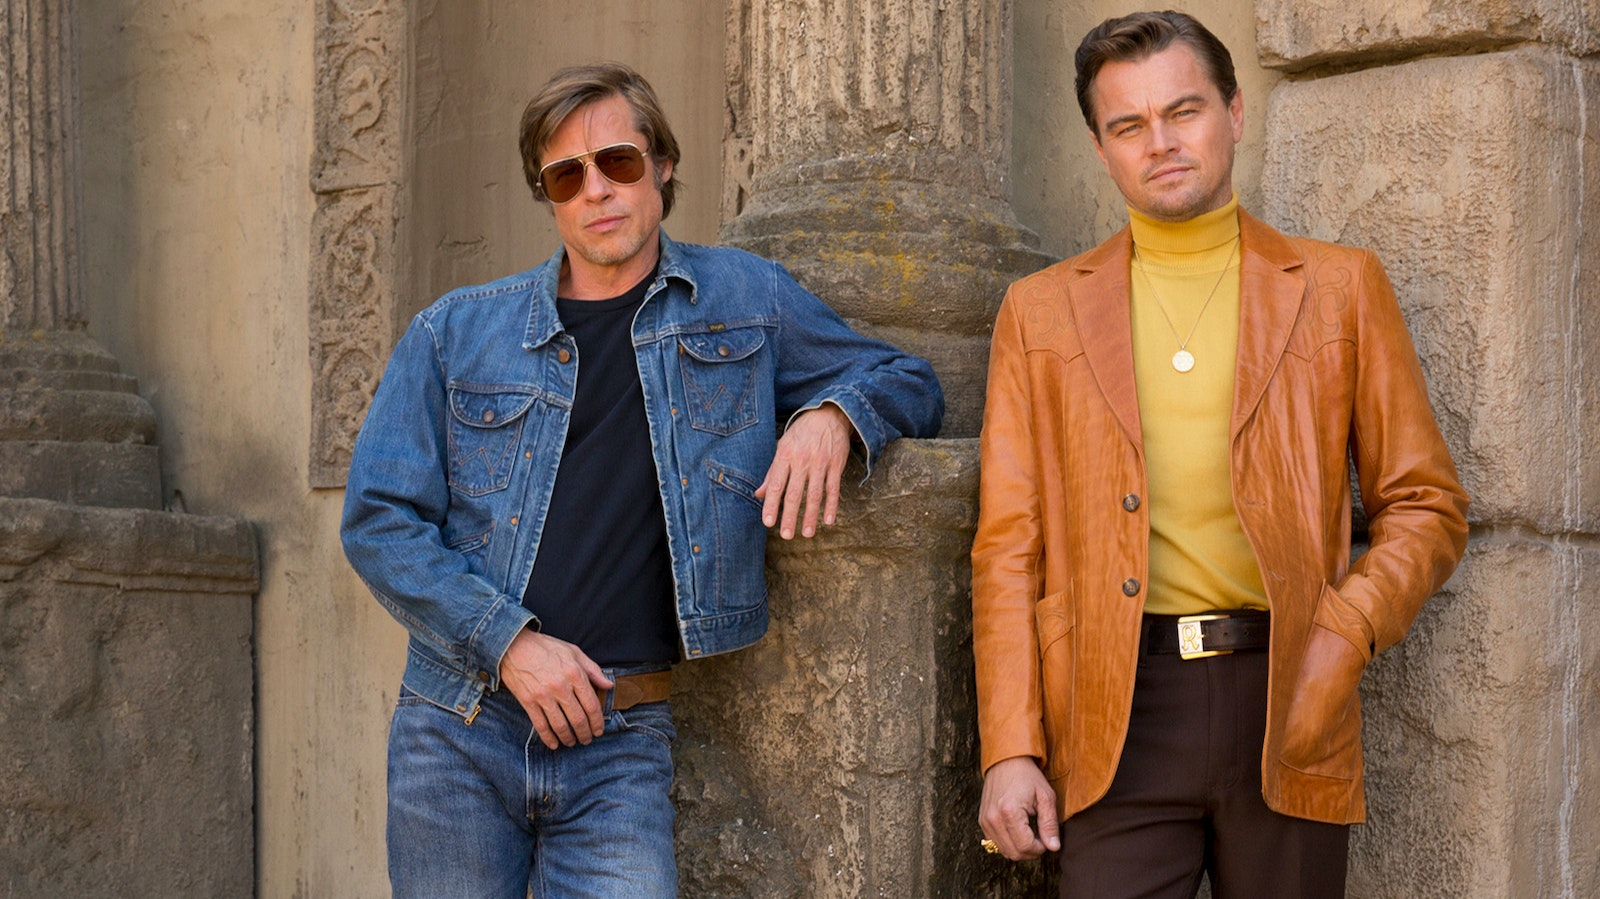 Afbeeldingsresultaat voor once upon a time in hollywood